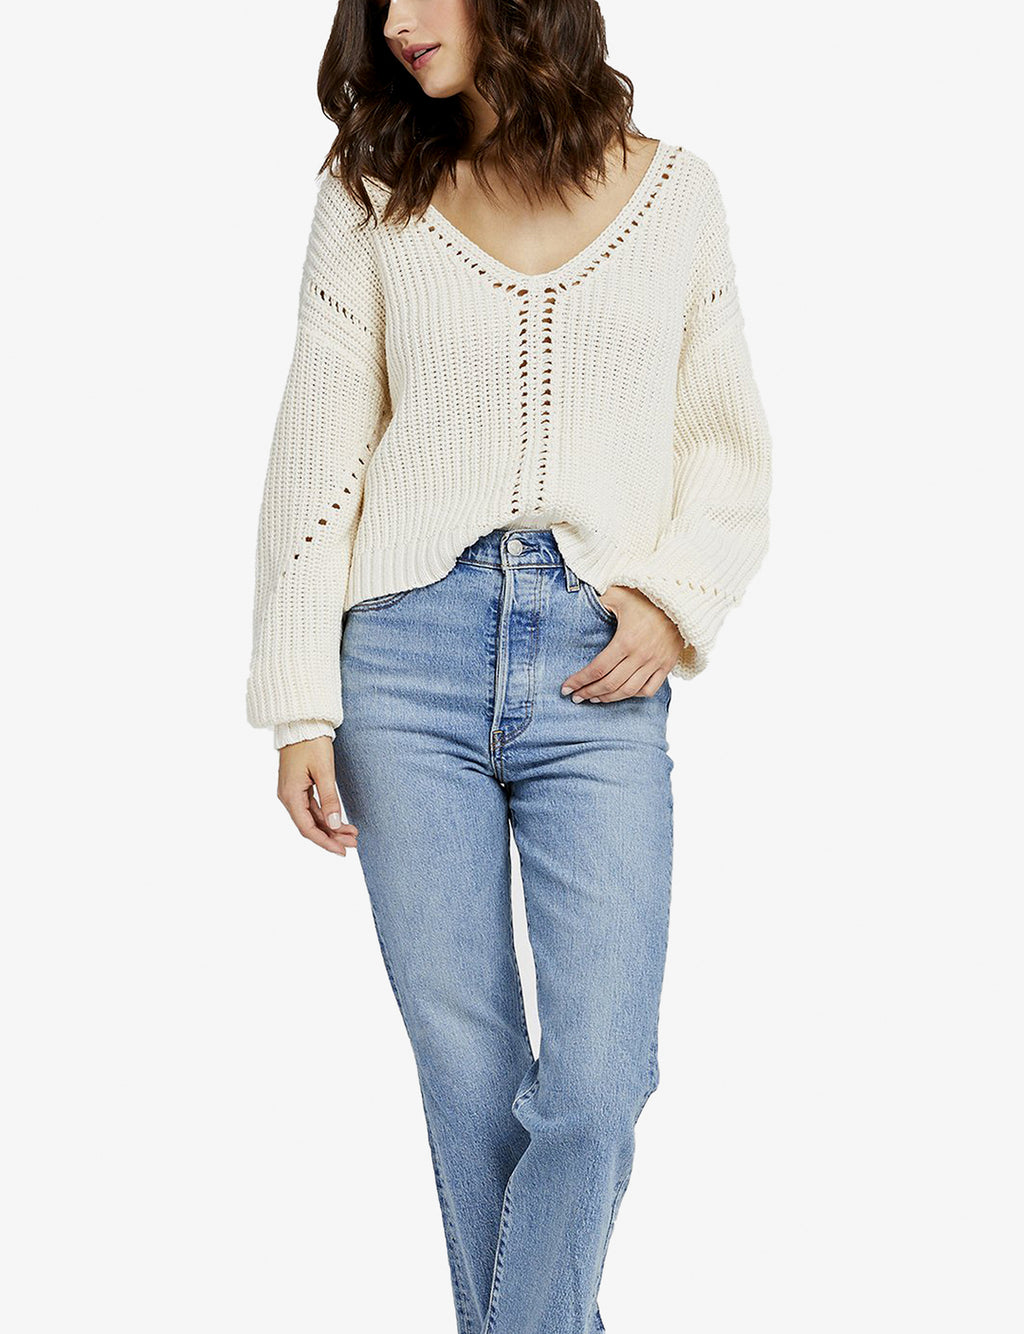 Arizona V Neck Sweater in Ivory